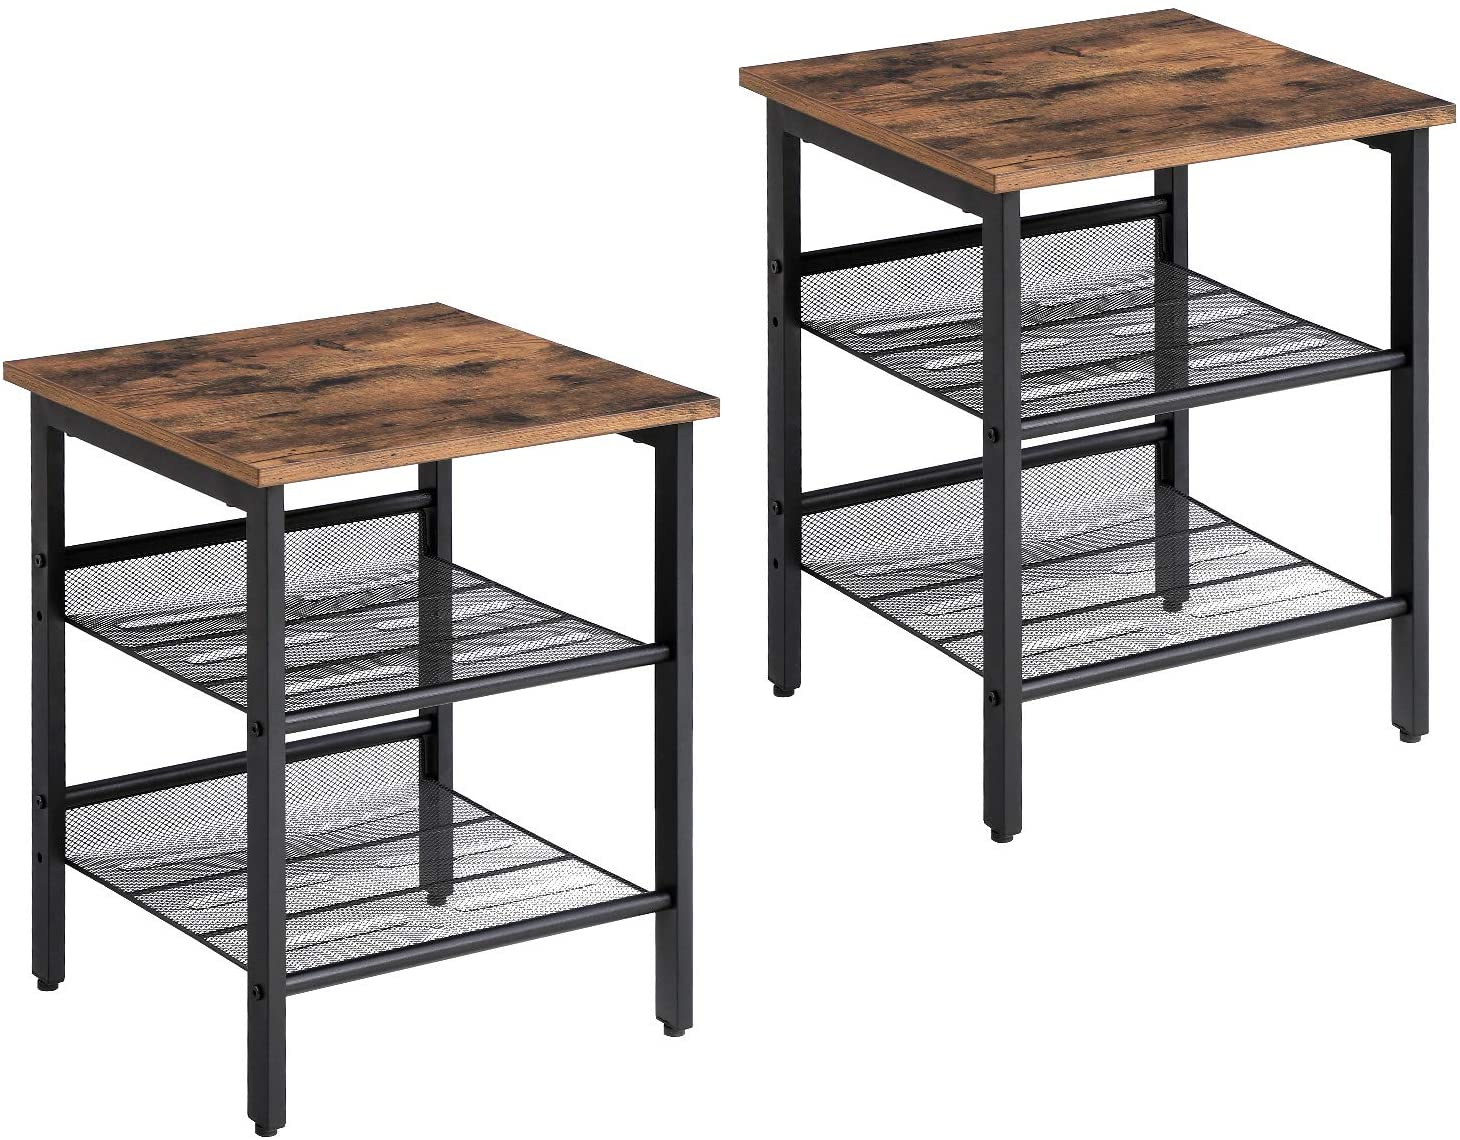 Enjoy fast, free nationwide shipping!  Family owned and operated, HawkinsWoodshop.com is your one stop shop for affordable furniture.  Shop HawkinsWoodshop.com for solid wood & metal modern, traditional, contemporary, industrial, custom, rustic, and farmhouse furniture including our Ryan Industrial Mesh Shelves Nightstand - Set of 2.